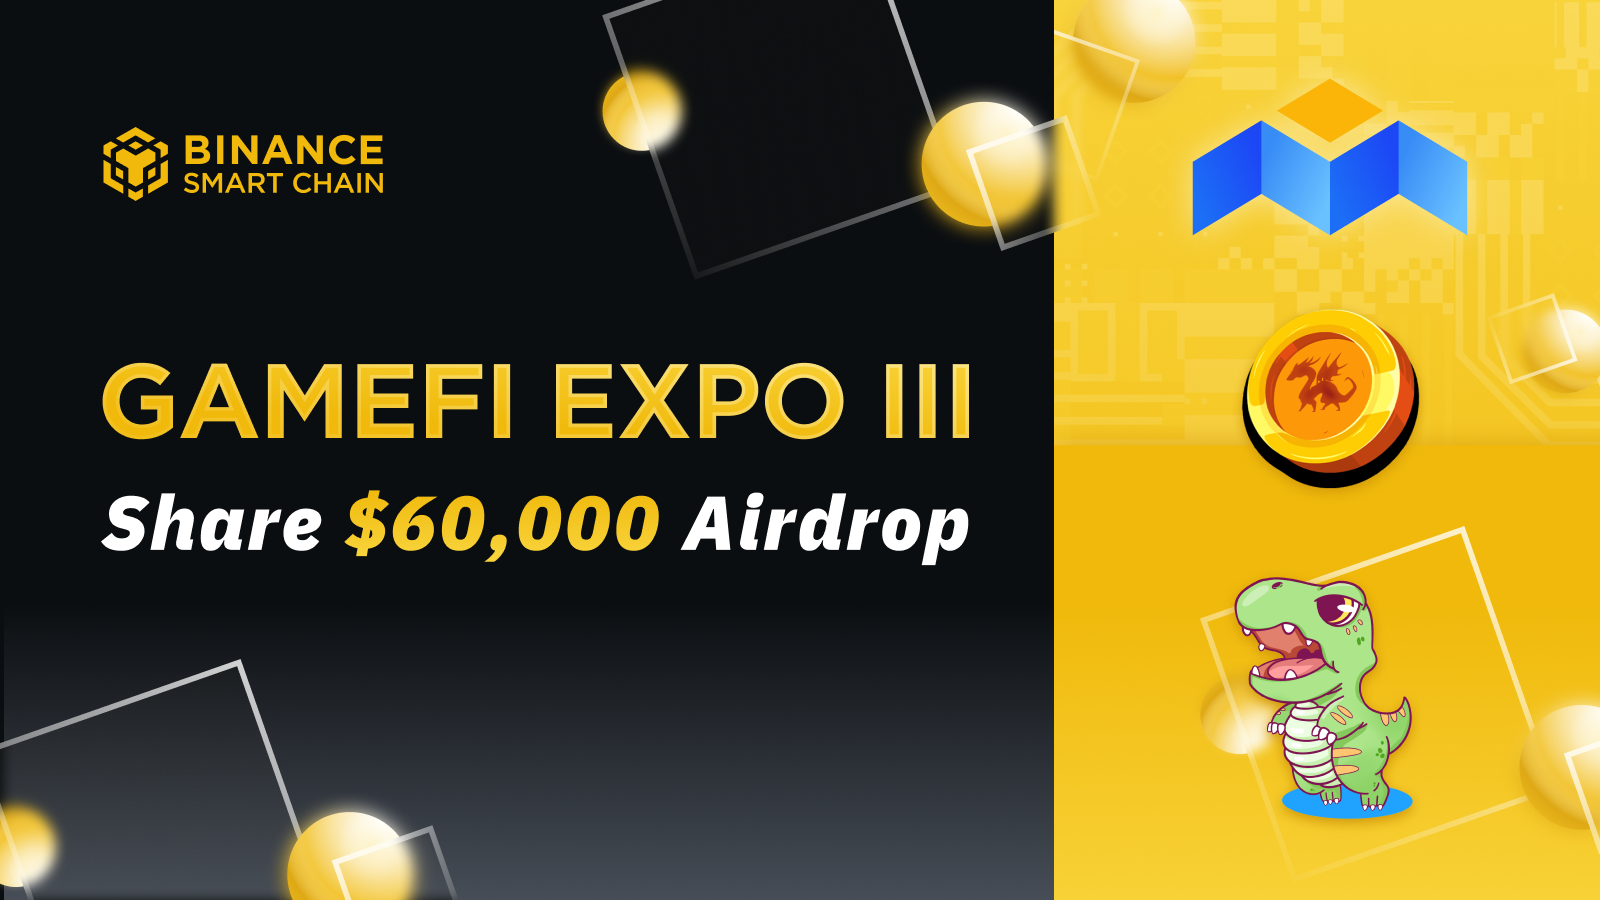 The BSC GameFi Expo Continues: 3 New Games and Over $60k in Airdrops on CoinMarketCap